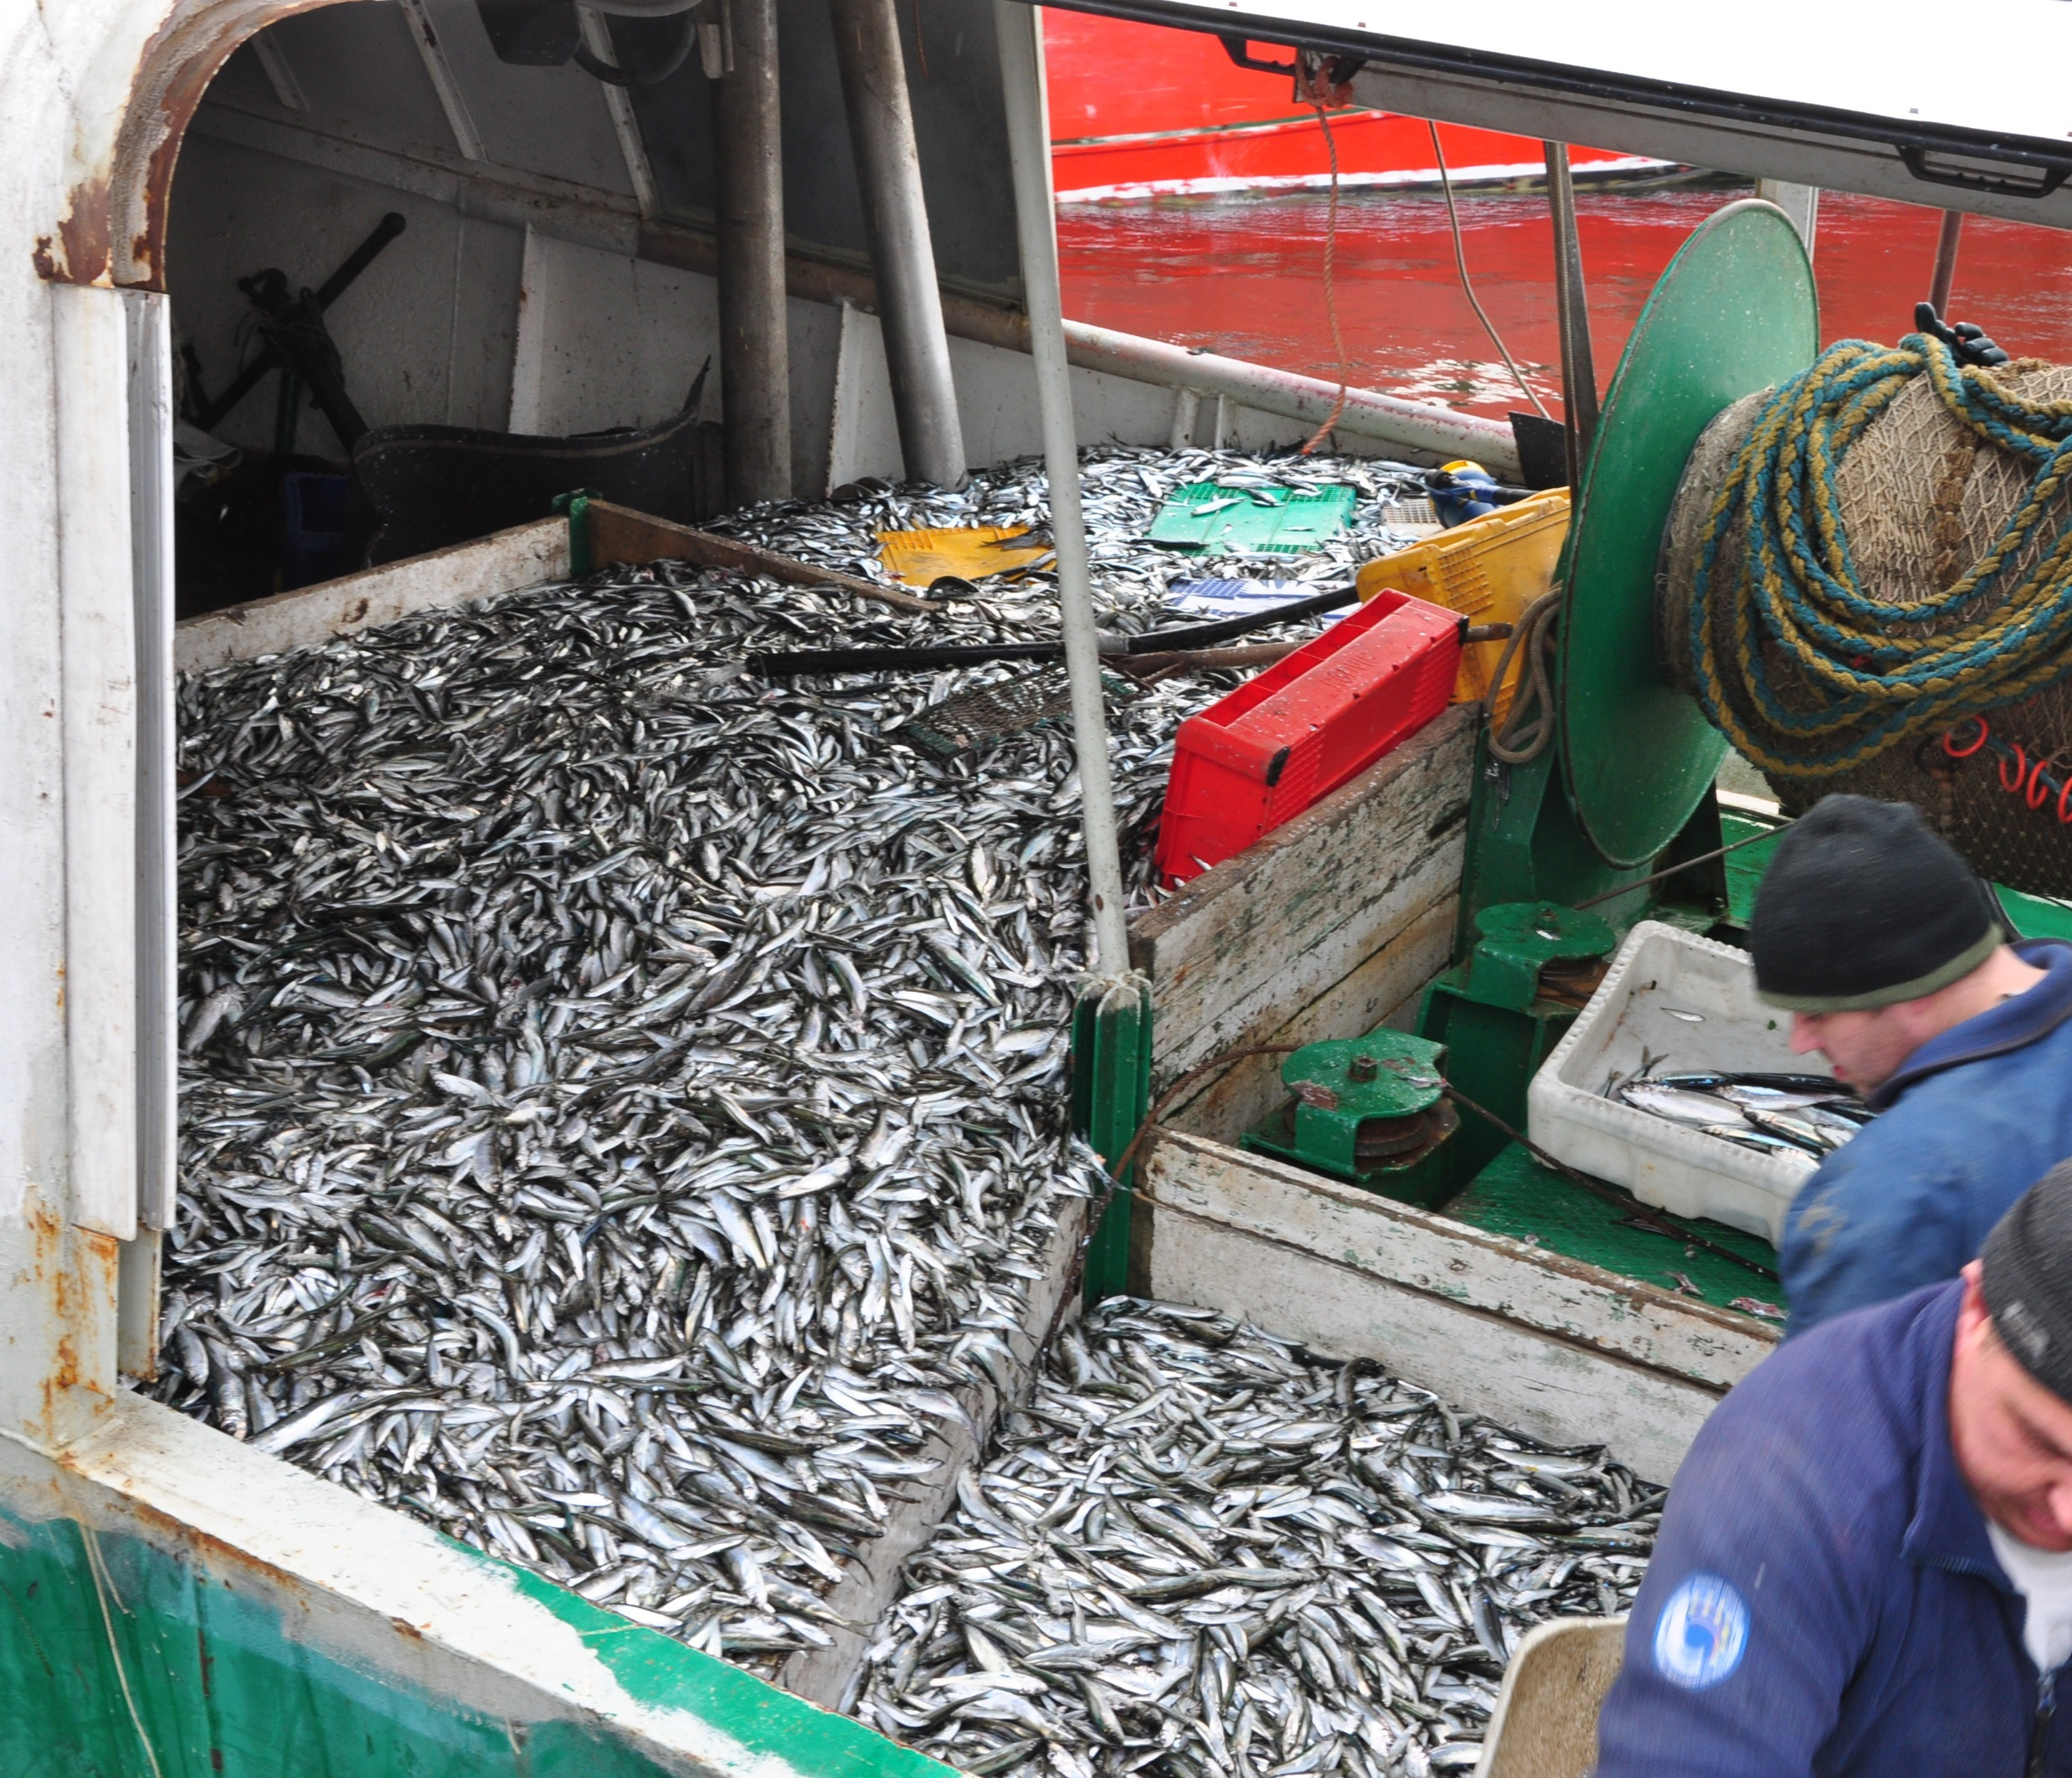 Sprat on board a trawler in the port of Hei, Poland in the Southern Baltic.